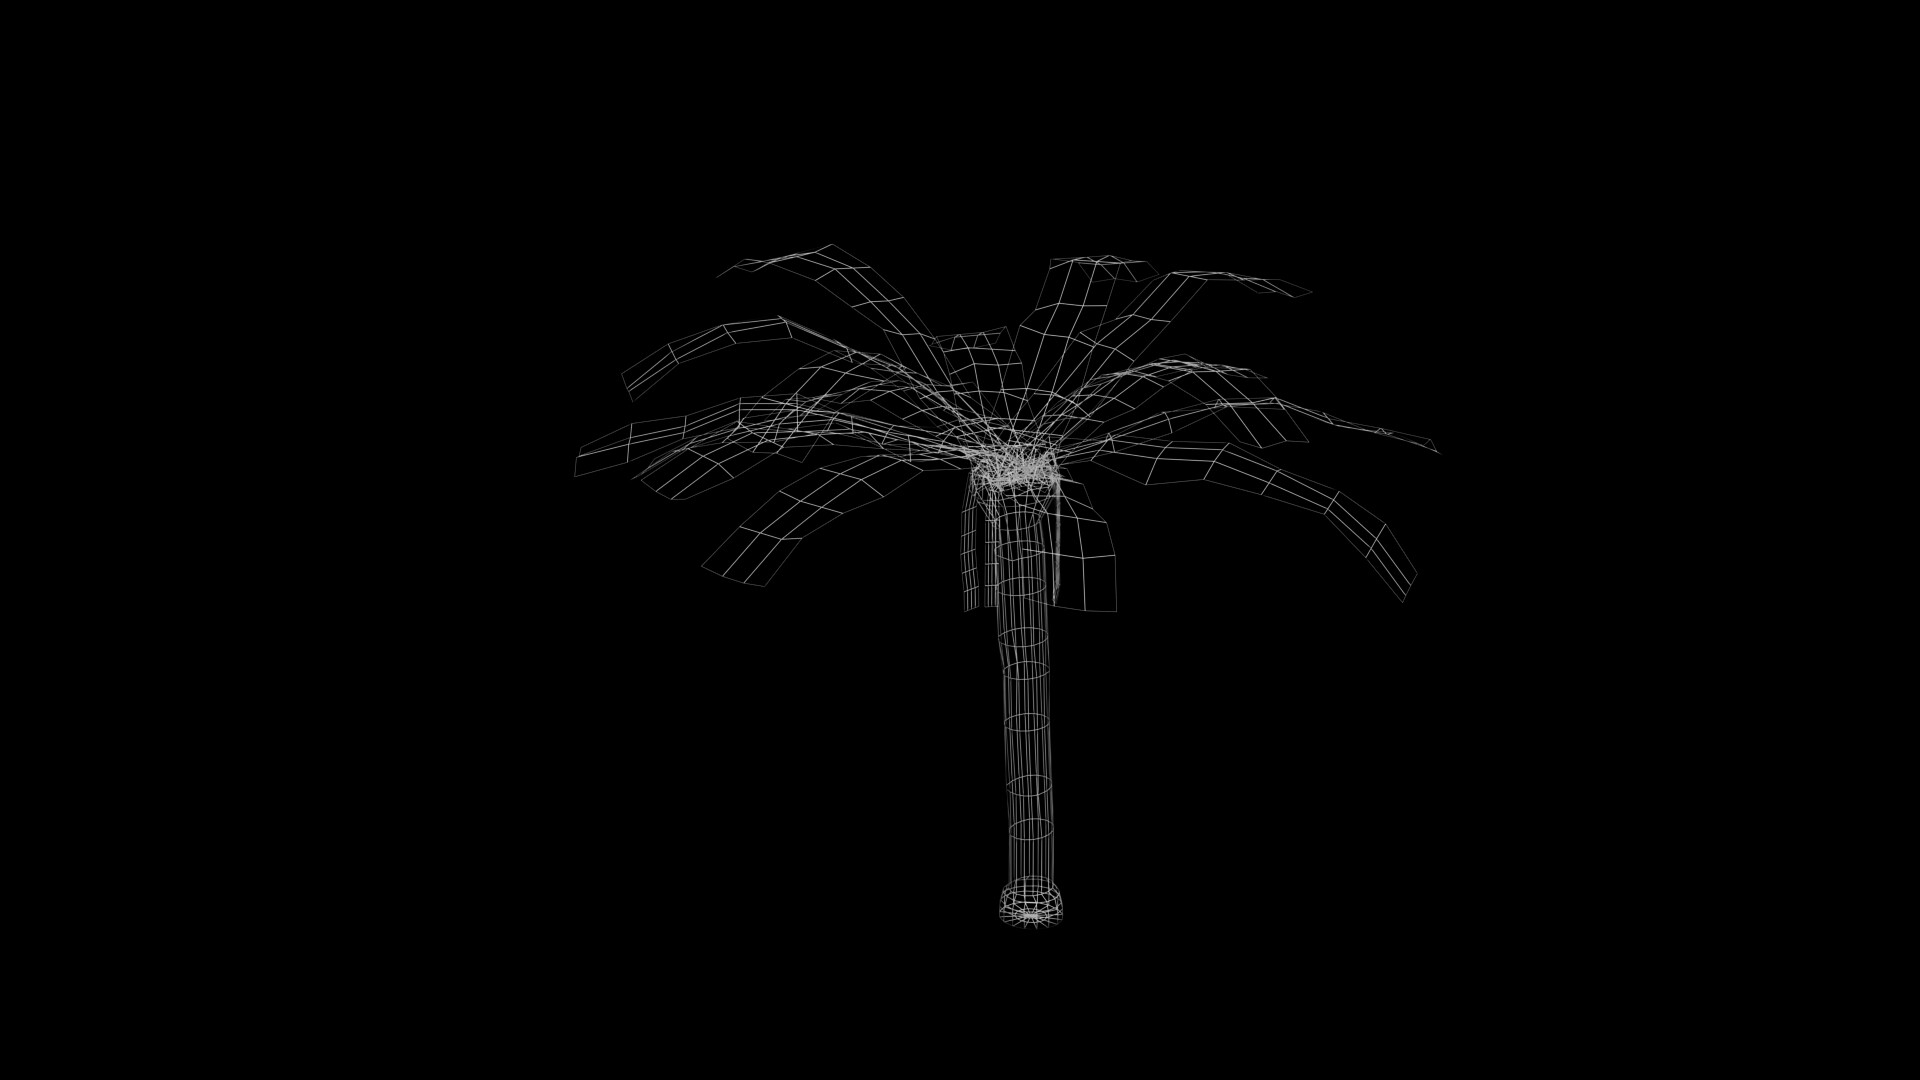 James skinner palm tree wireframe